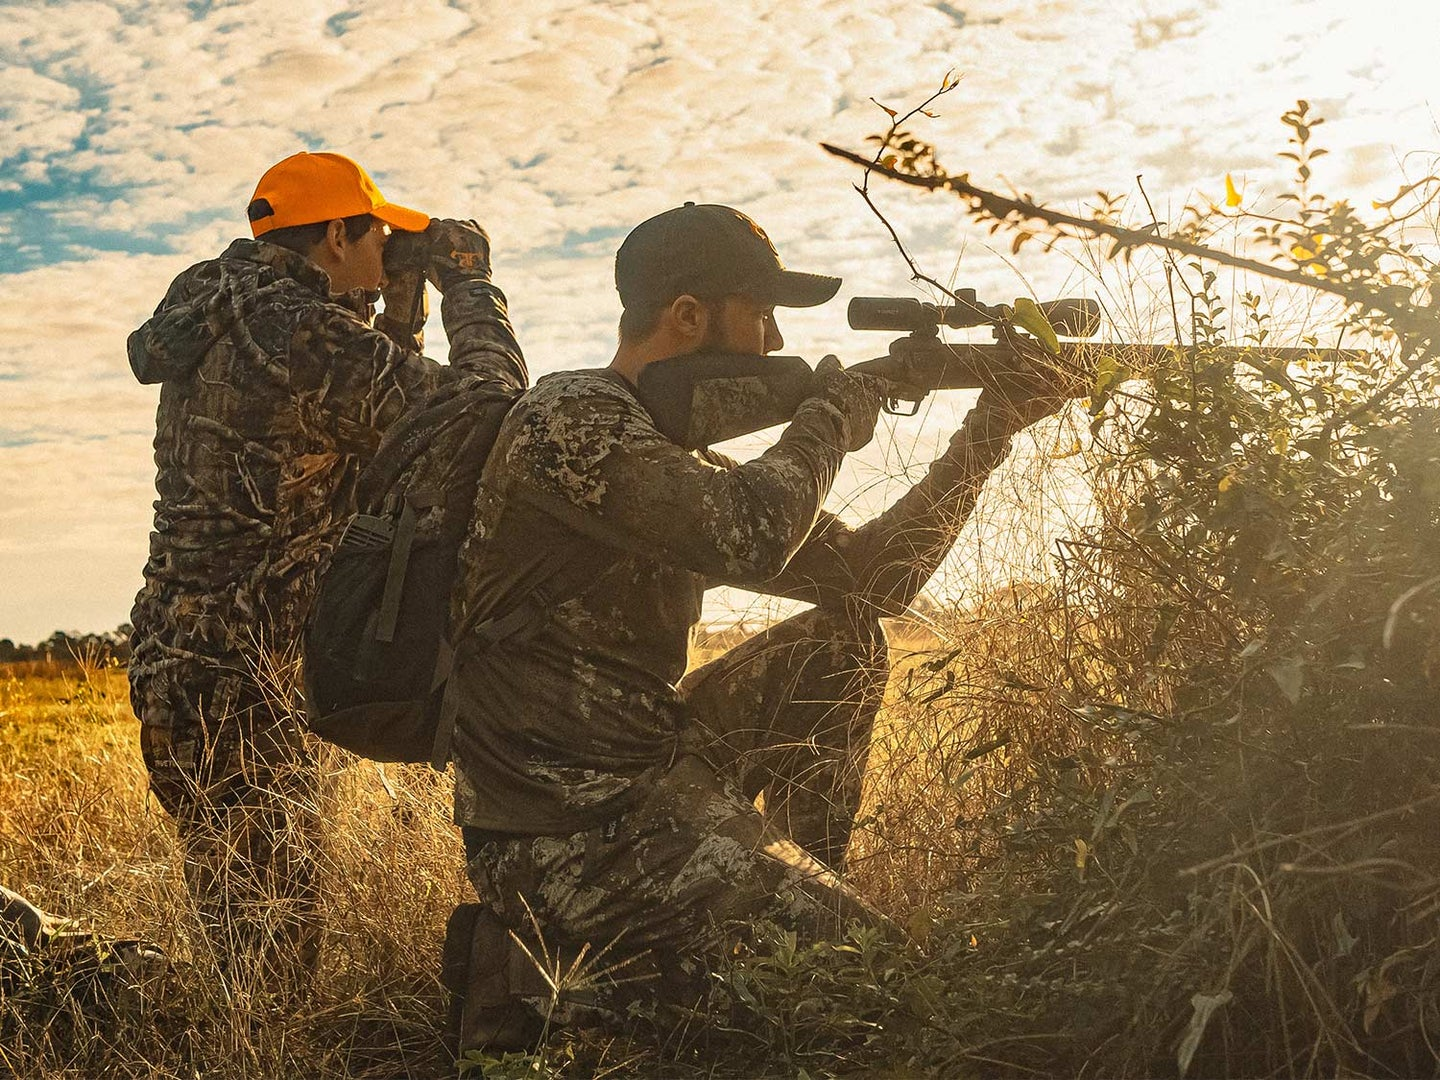 Two hunters kneel, scout, and aim their rifle in an open field.